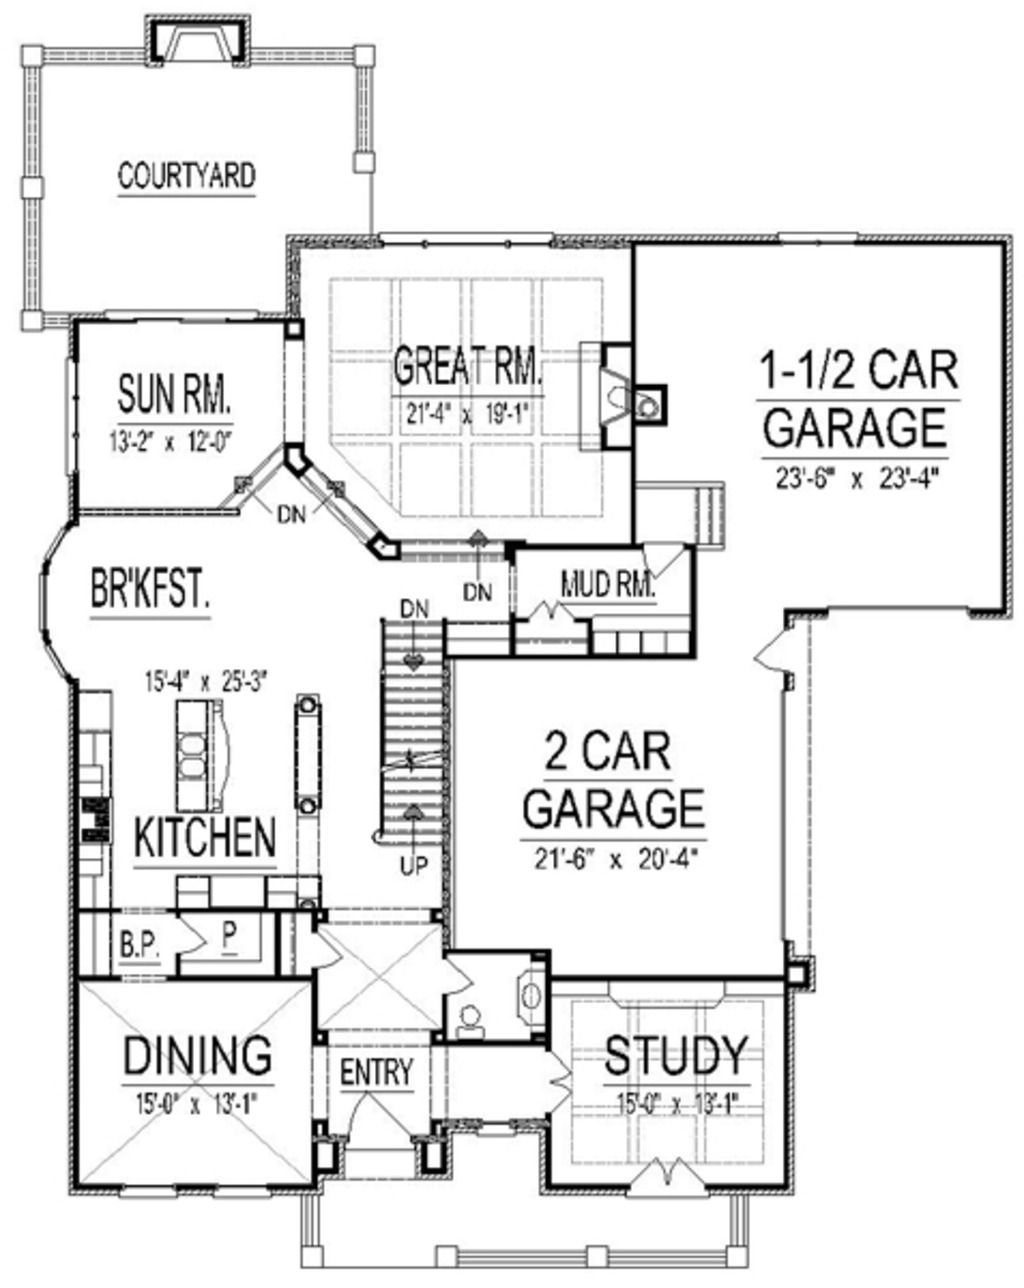 Plan 458 17 love it no turret but very nice use of space Love